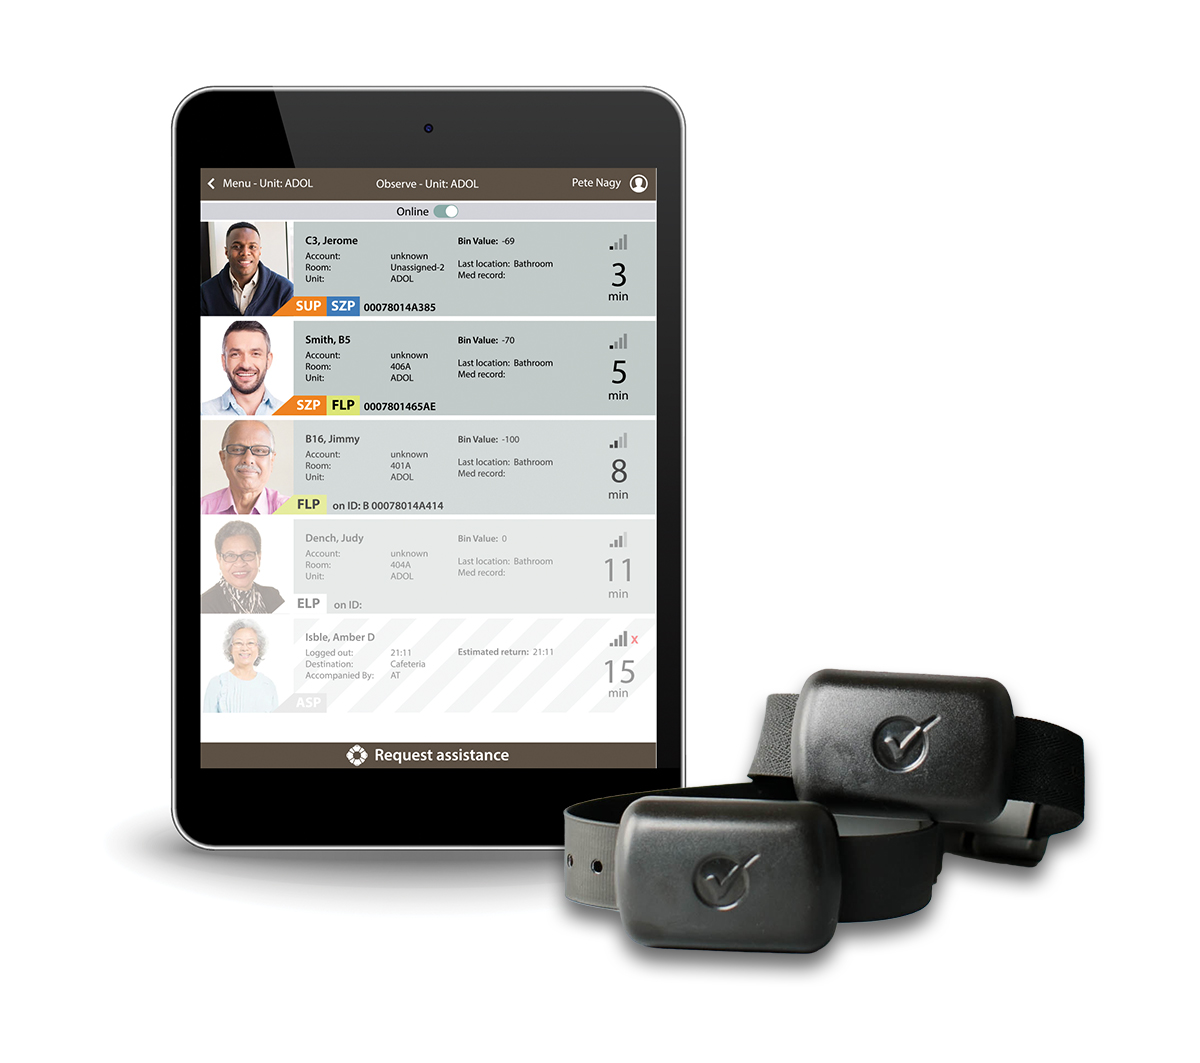 Tablet showing ObservSMART patient checks screen and 2 patient wristbands